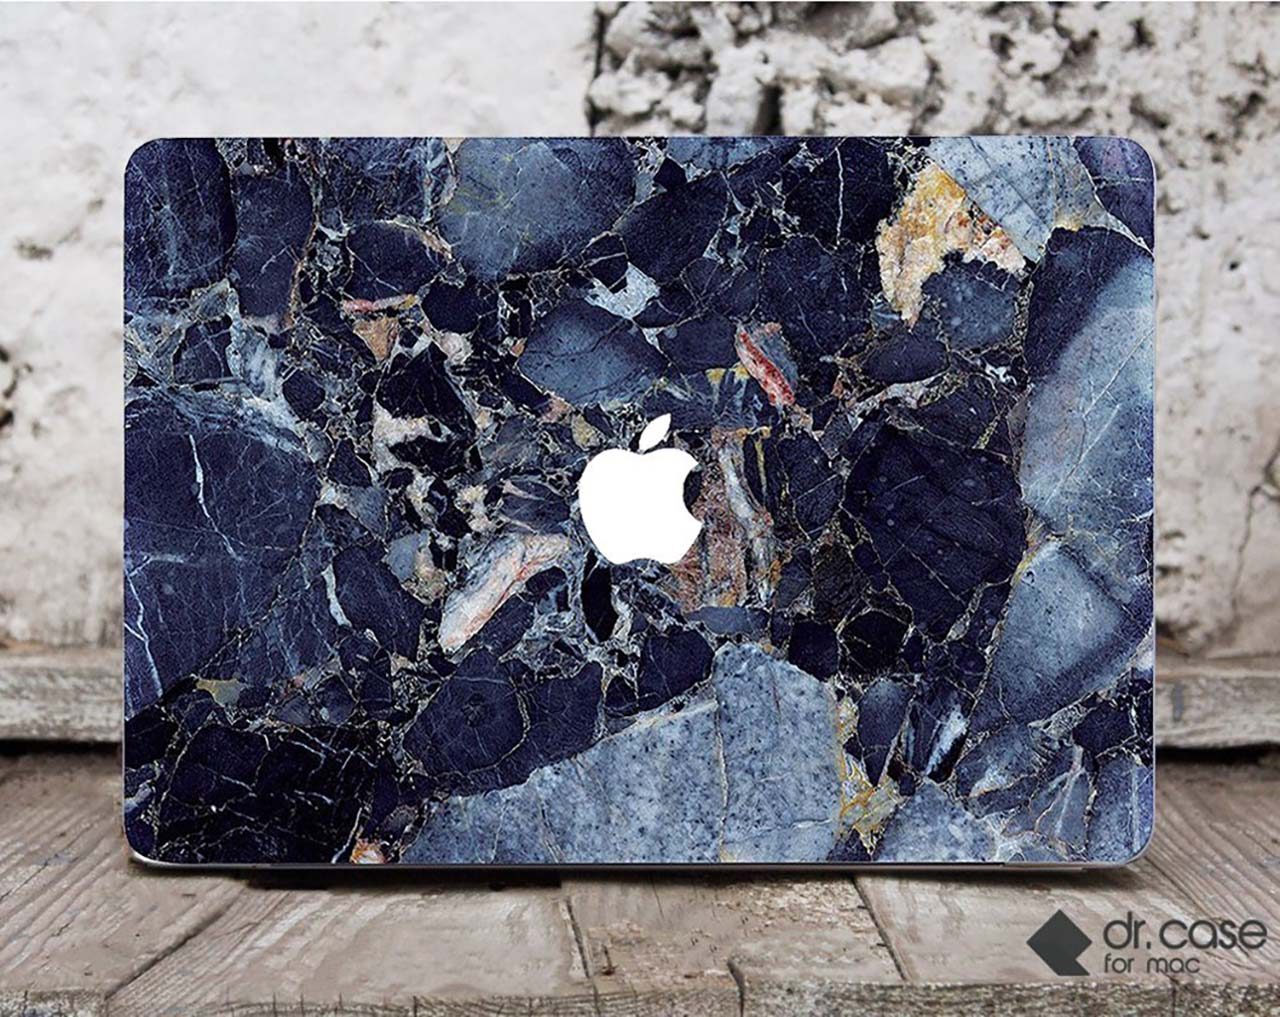 11 Classy Items You Can Buy Under $20 On Amazon #5: Marble MacBook Skins